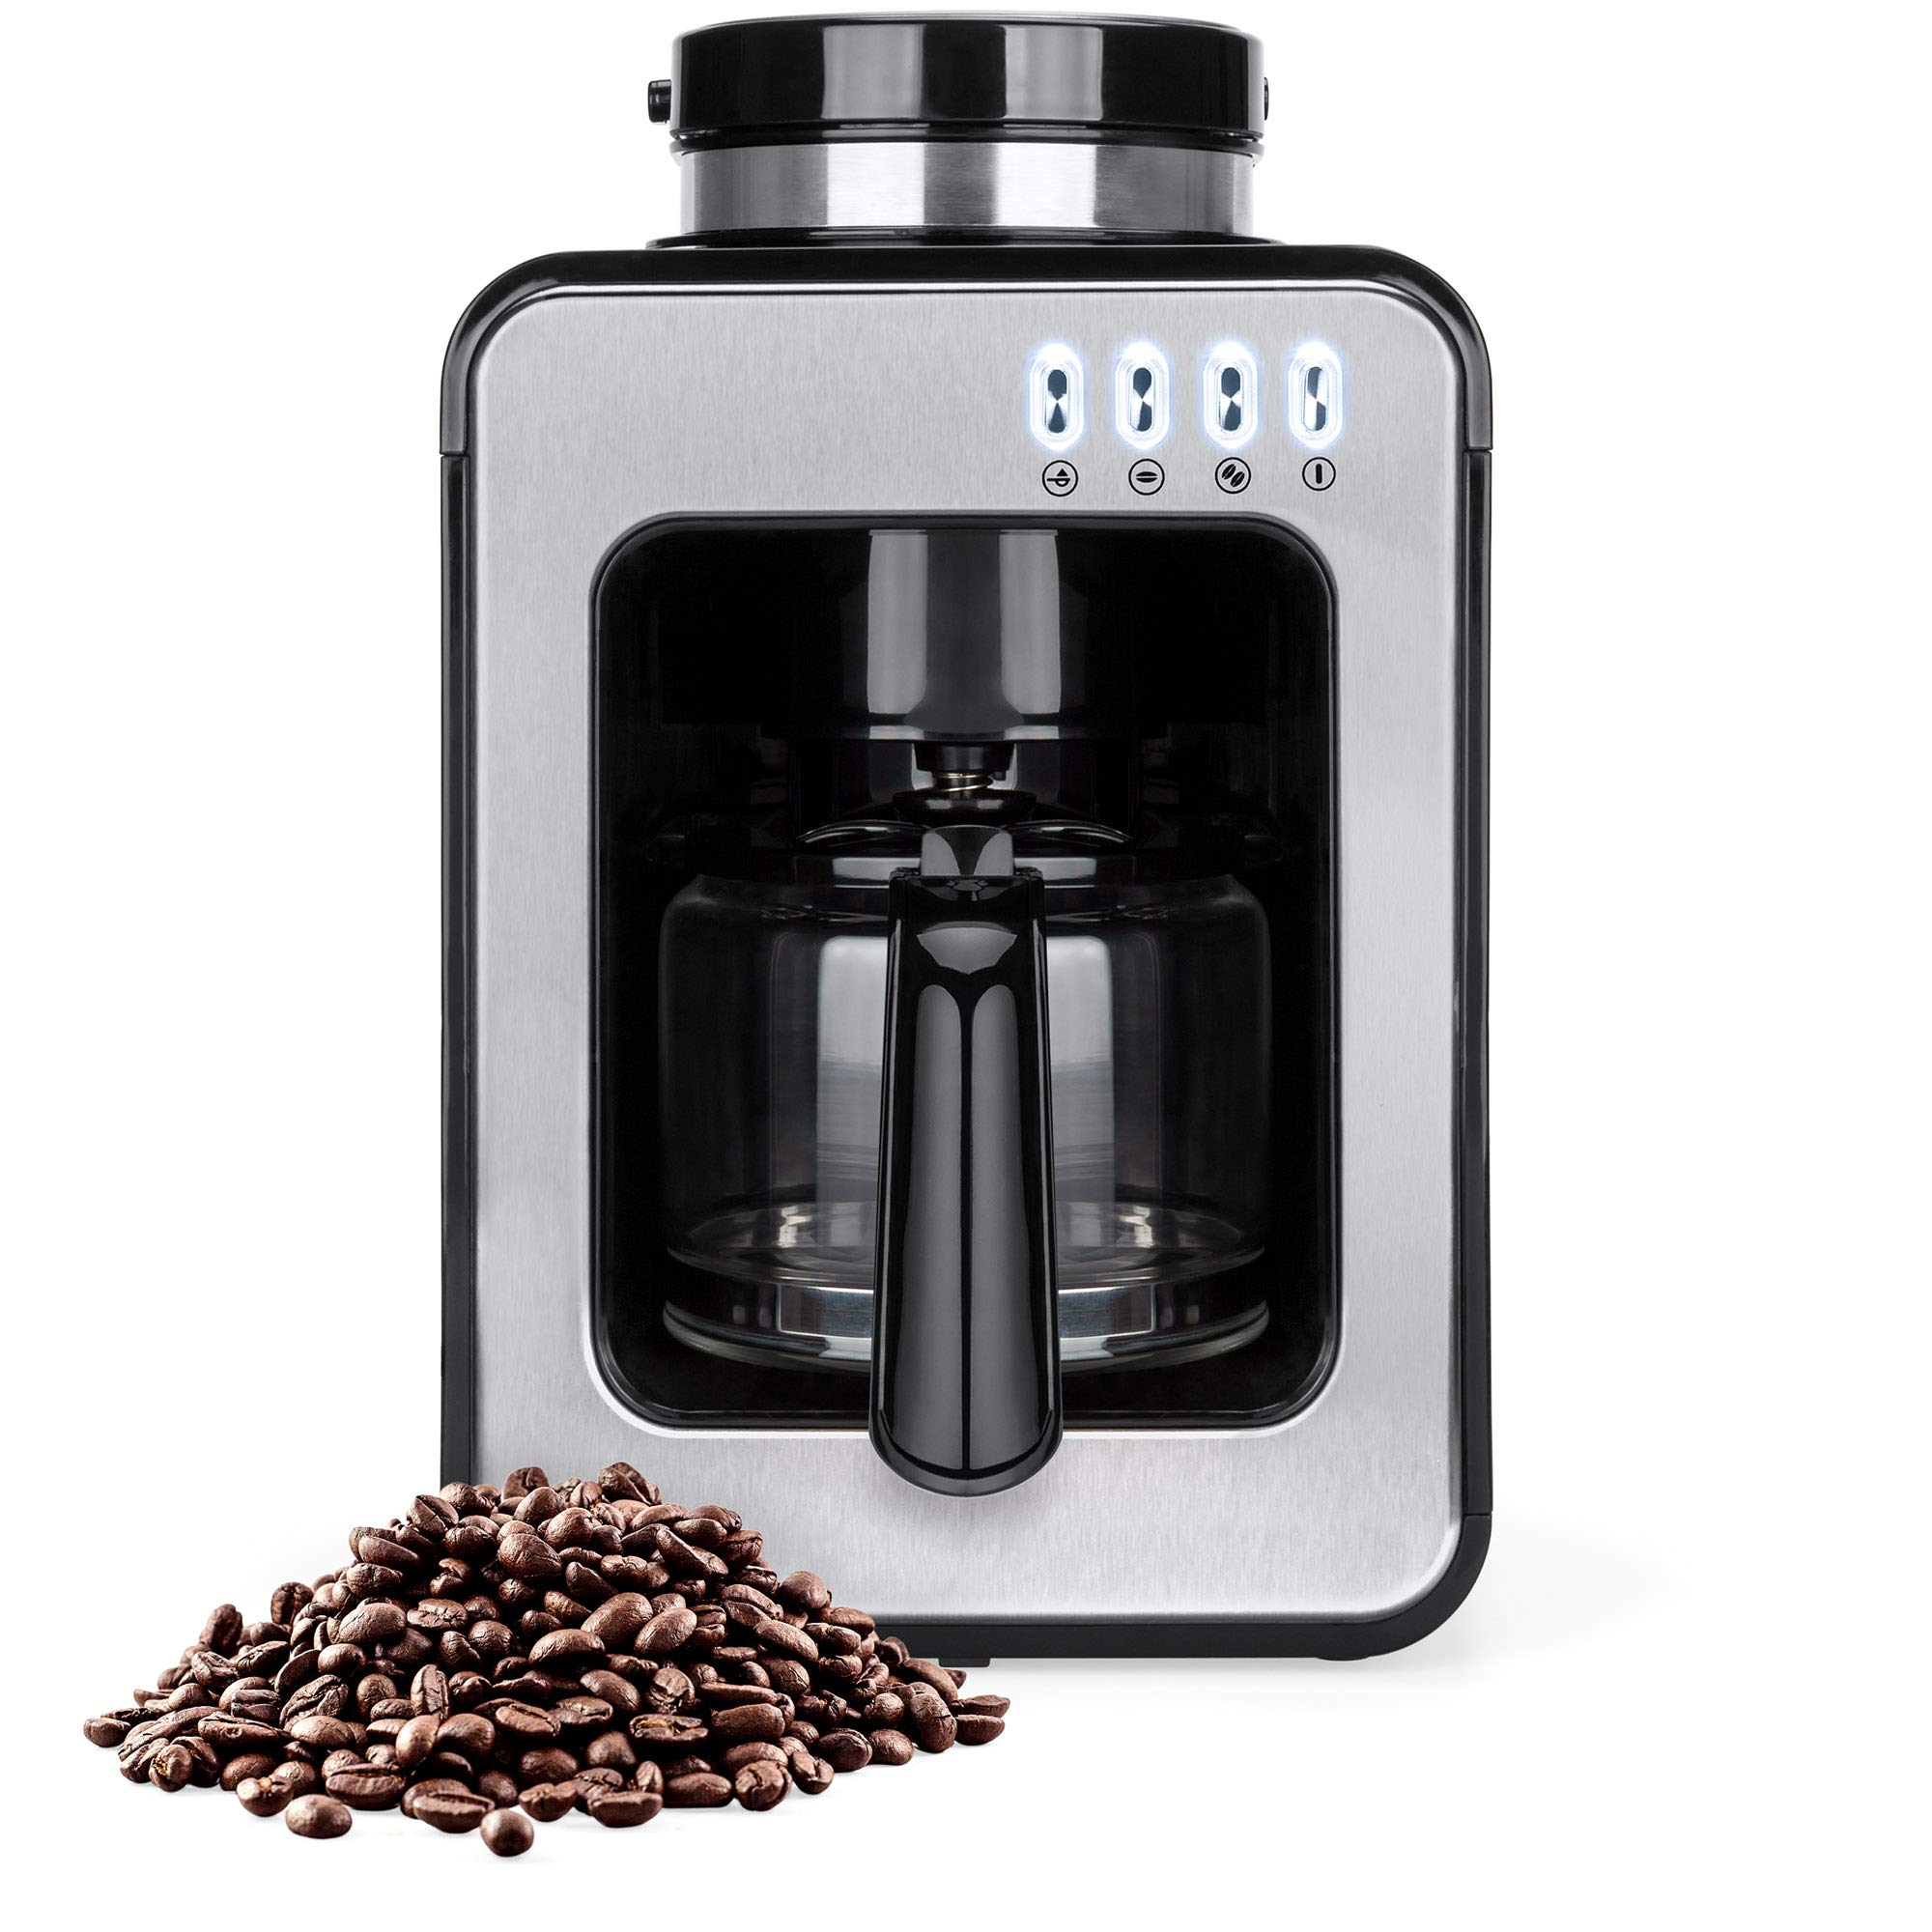 Best Choice Products 600W 2-Cup Automatic Coffee Maker w/Built-In Grinder, Auto Drip, Warm Plate, Scoop, Brush